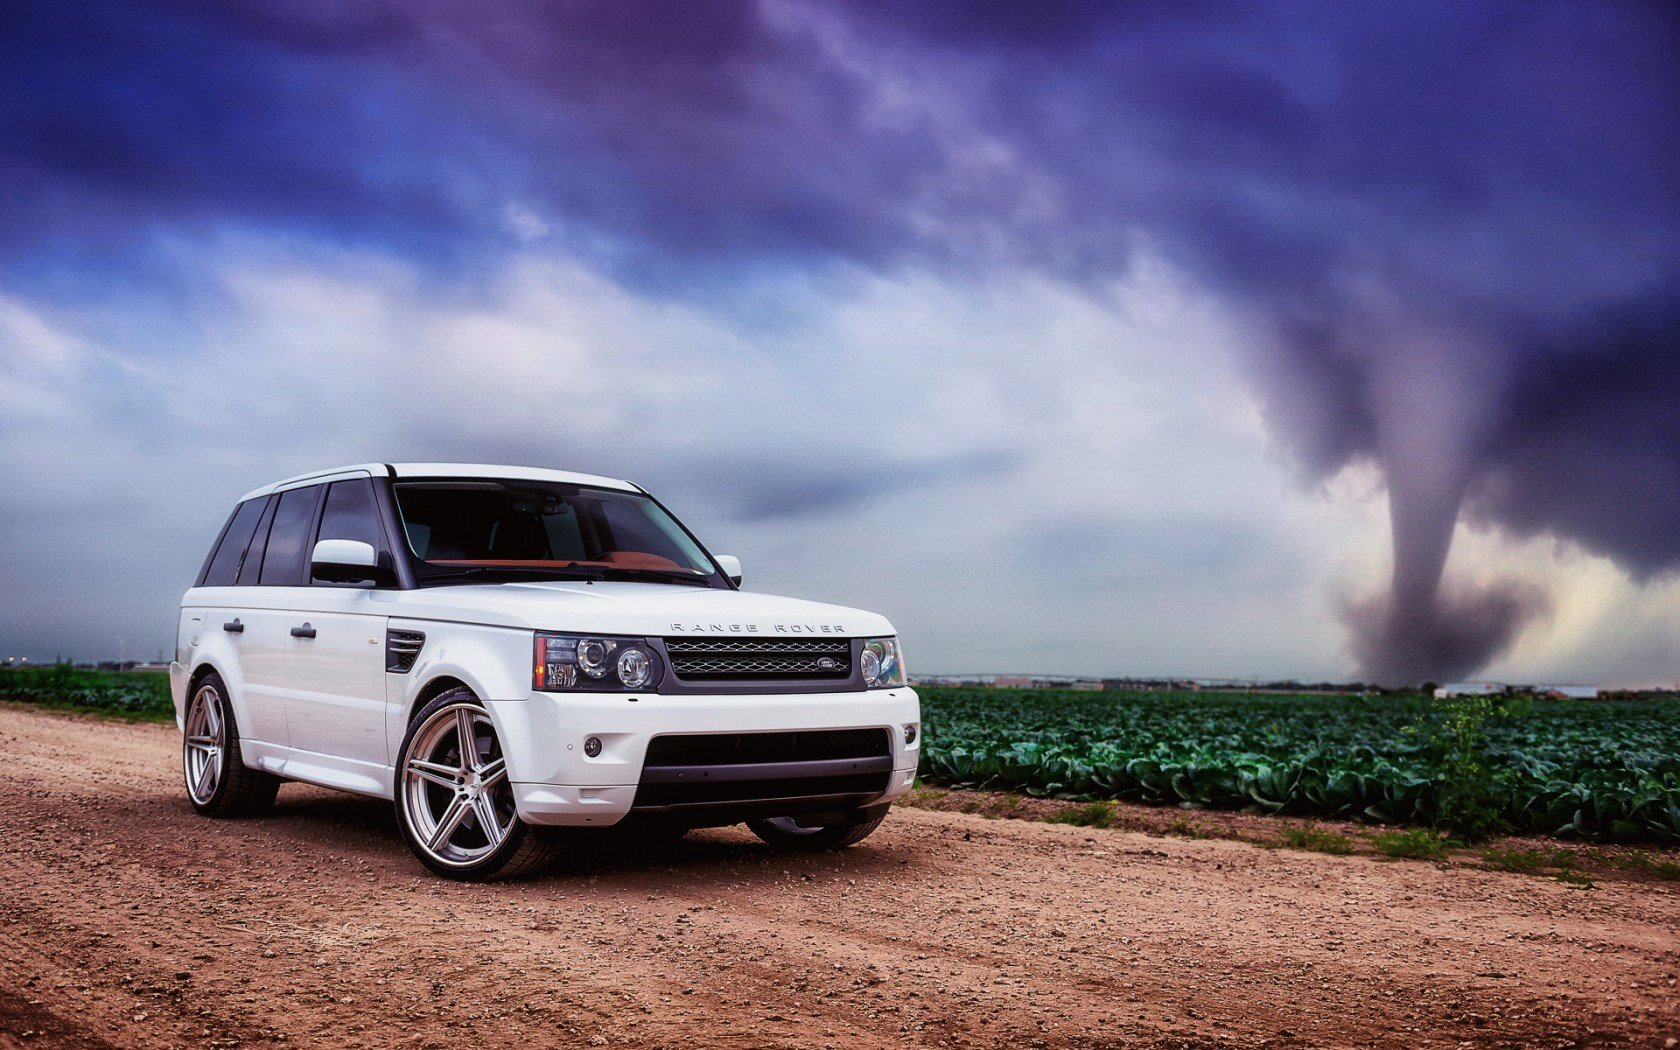 High resolution Range Rover hd 1680x1050 background ID:162880 for desktop